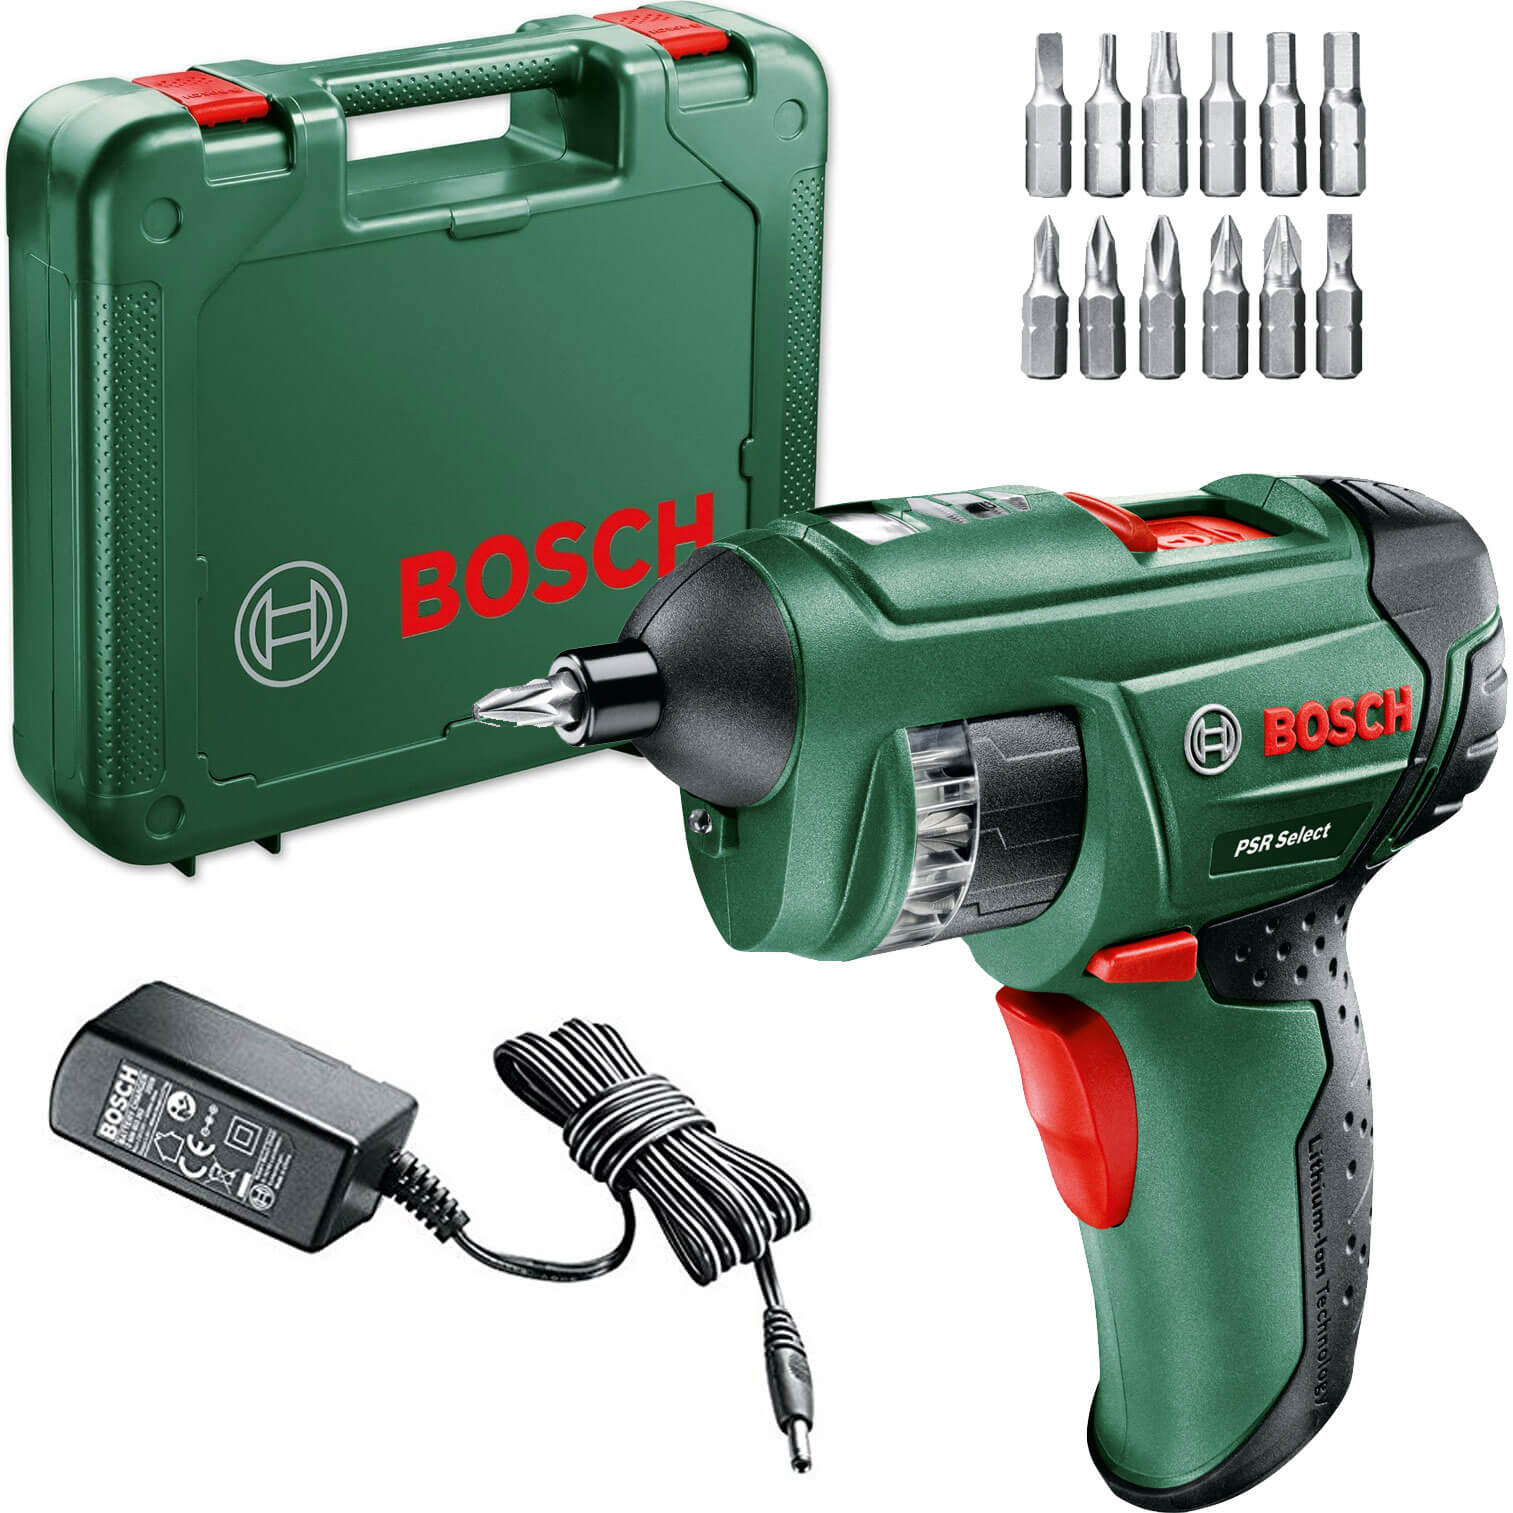 bosch ixo 3 3 6v lithium ion cordless screwdriver buzamand. Black Bedroom Furniture Sets. Home Design Ideas